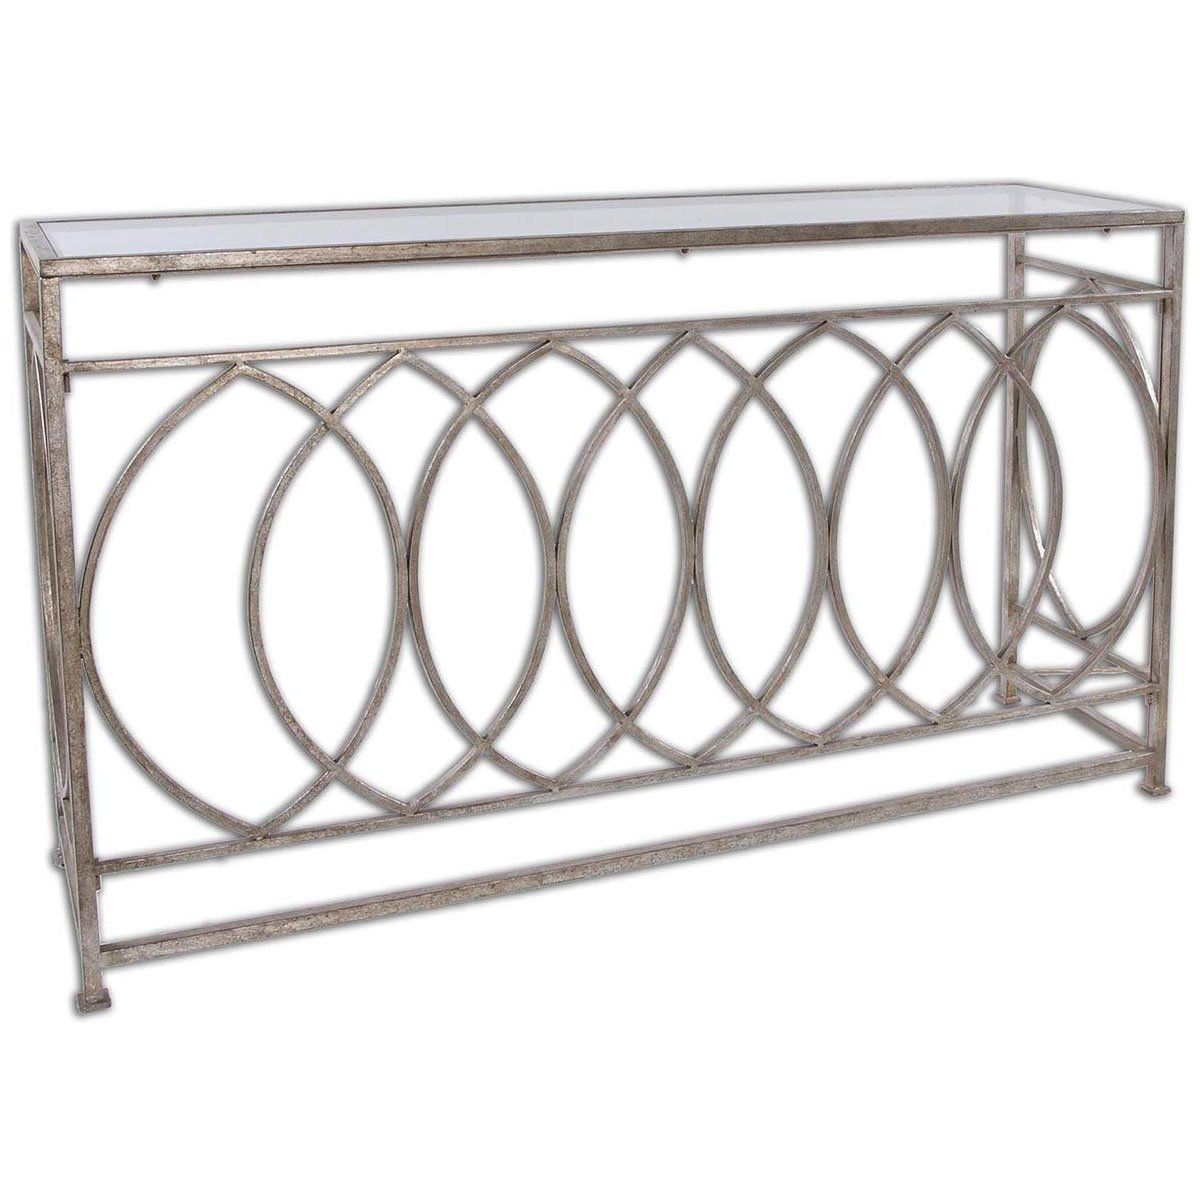 Amazon.com: Uttermost 24306 Aniya Glass Top Console Table: Kitchen U0026 Dining